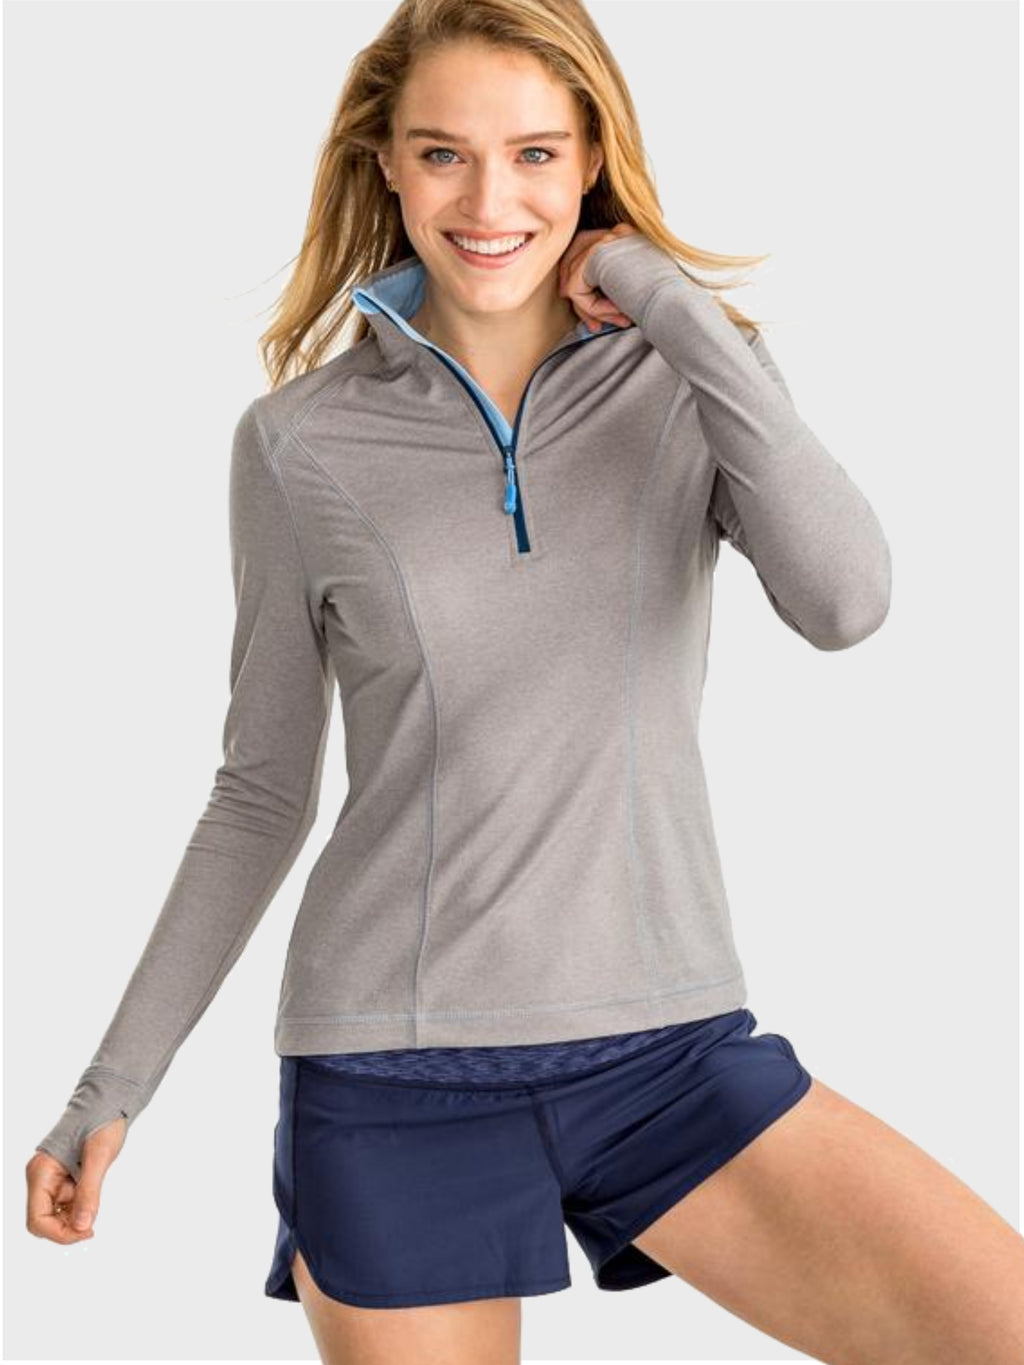 Skipjack Athletic 1/4 Zip - Heather Grey - Island Outfitters